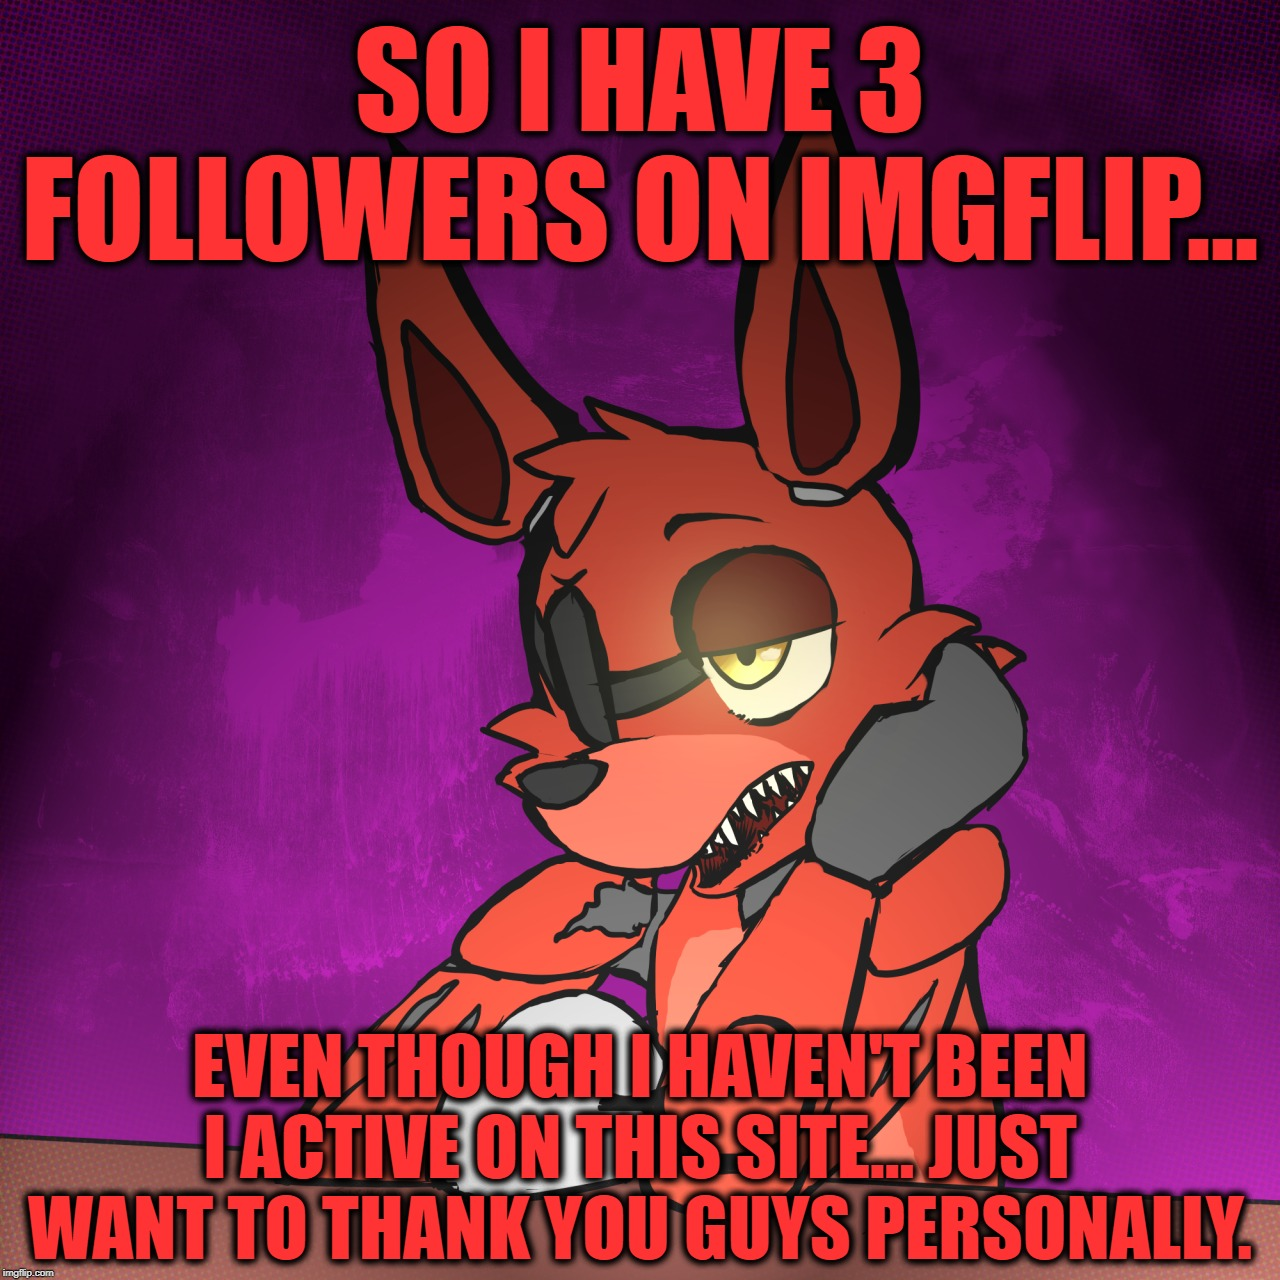 I'm Quite Surprised! | SO I HAVE 3 FOLLOWERS ON IMGFLIP... EVEN THOUGH I HAVEN'T BEEN I ACTIVE ON THIS SITE... JUST WANT TO THANK YOU GUYS PERSONALLY. | image tagged in juicydeath1025,imgflip,followers,five nights at freddy's,foxy,i am told i'm funny | made w/ Imgflip meme maker